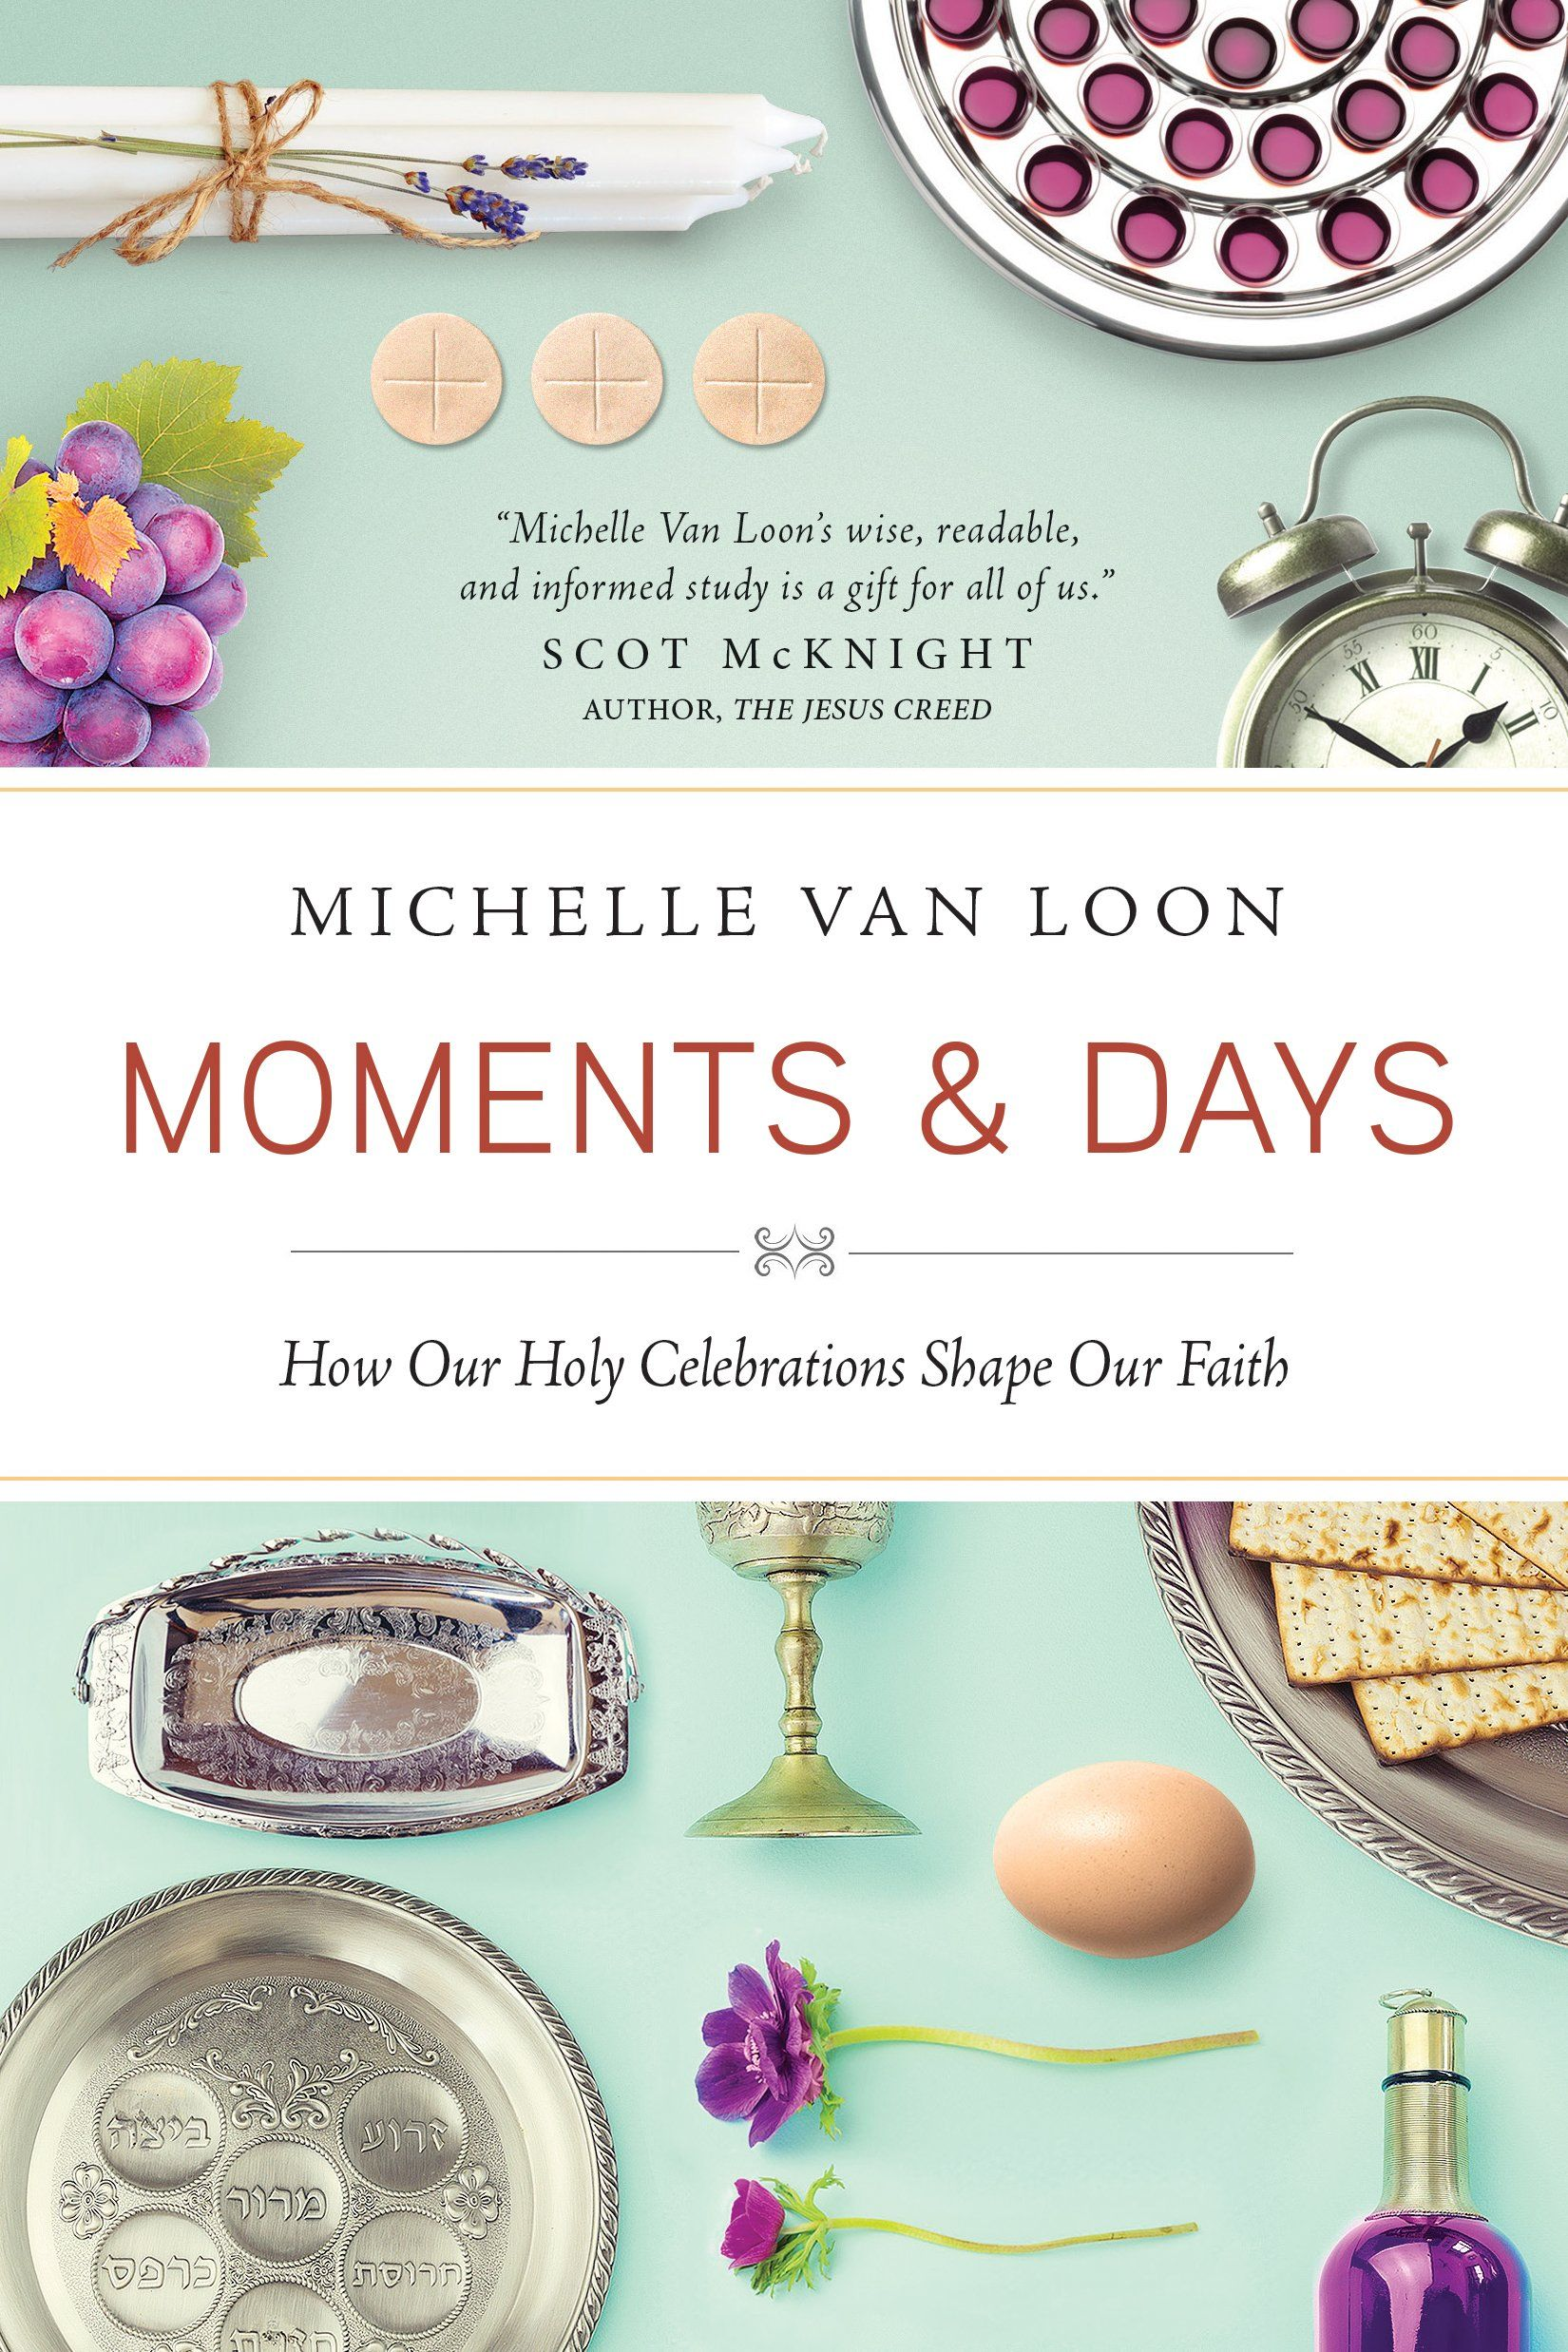 Moments & Days: How Our Holy Celebrations Shape Our Faith: Michelle Van Loon: 9781631464638: Amazon.com: Books